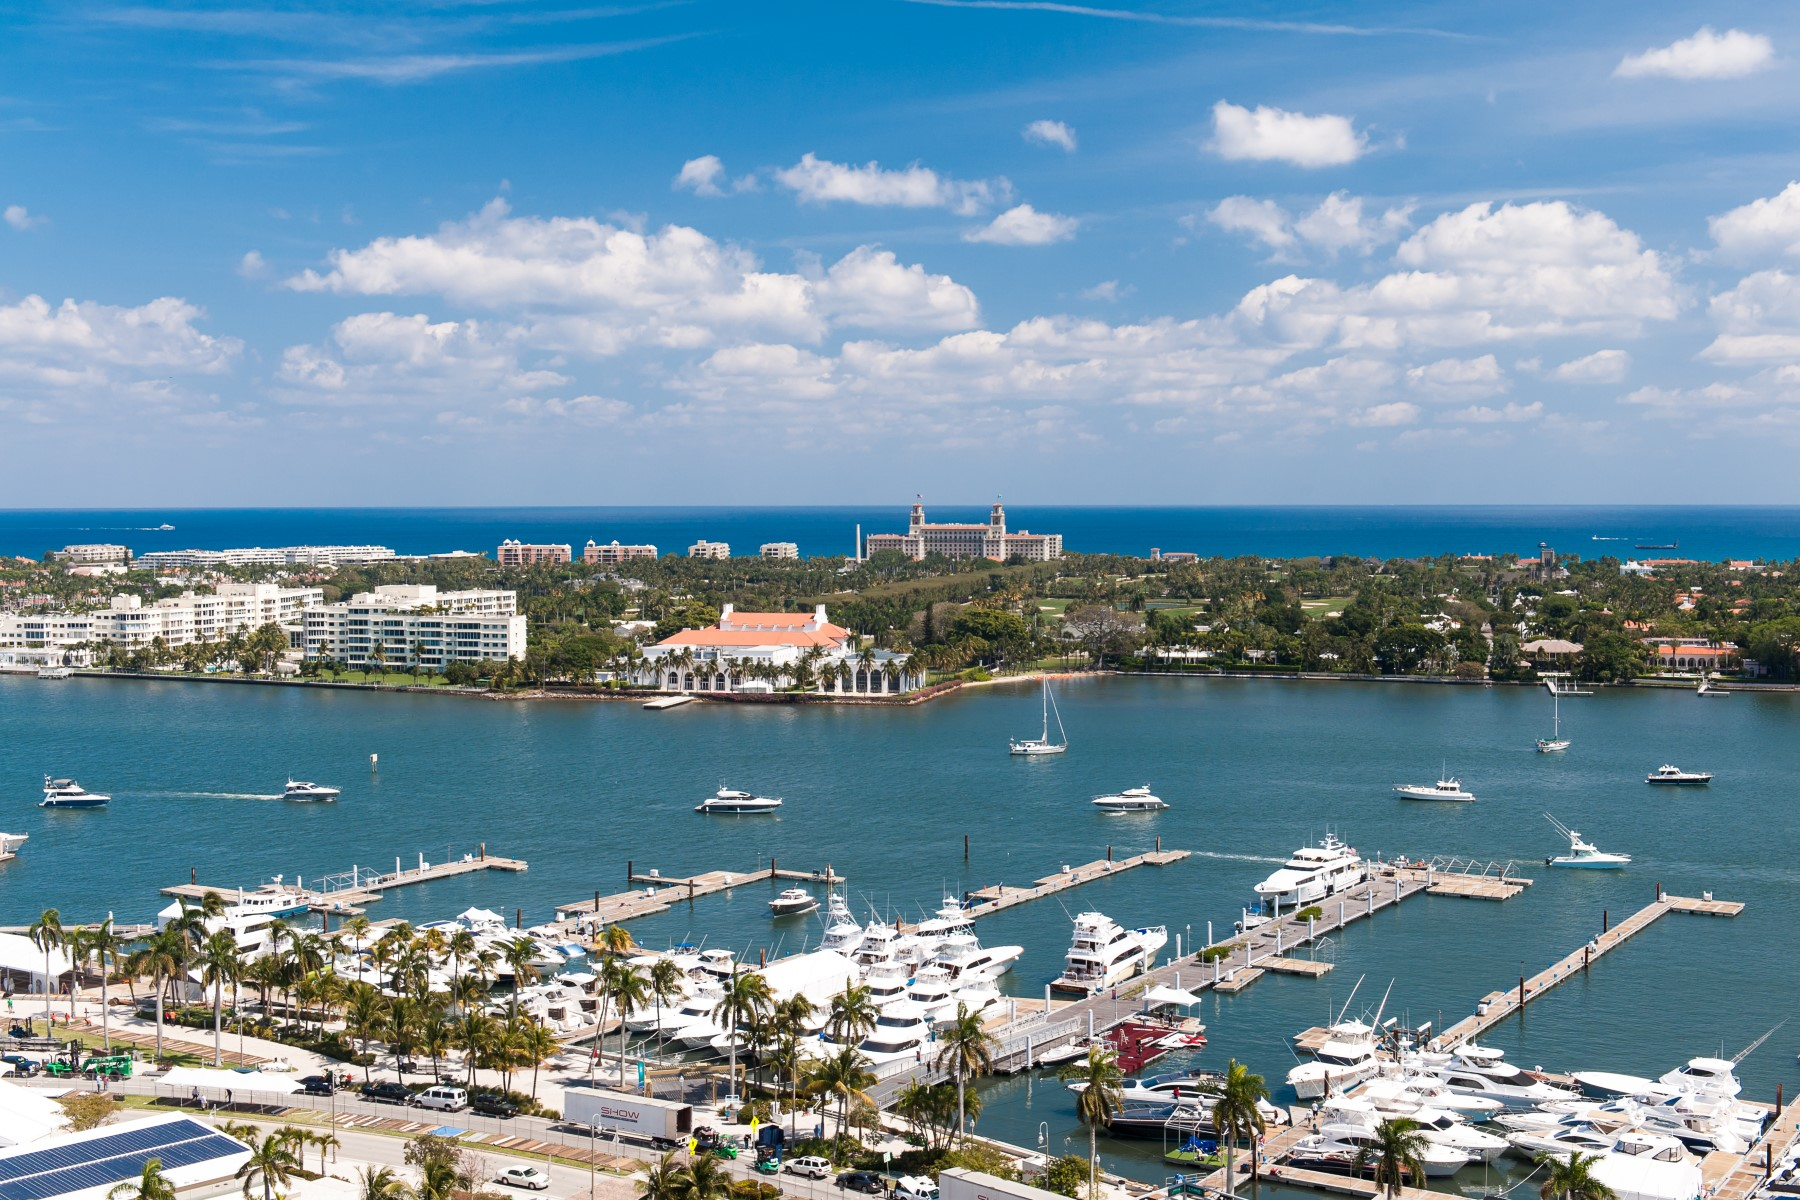 Кондоминиум для того Продажа на Luxury Apartment with Spectacular Views 201 S Narcissus Ave Apt 1104 West Palm Beach, Флорида, 33401 Соединенные Штаты